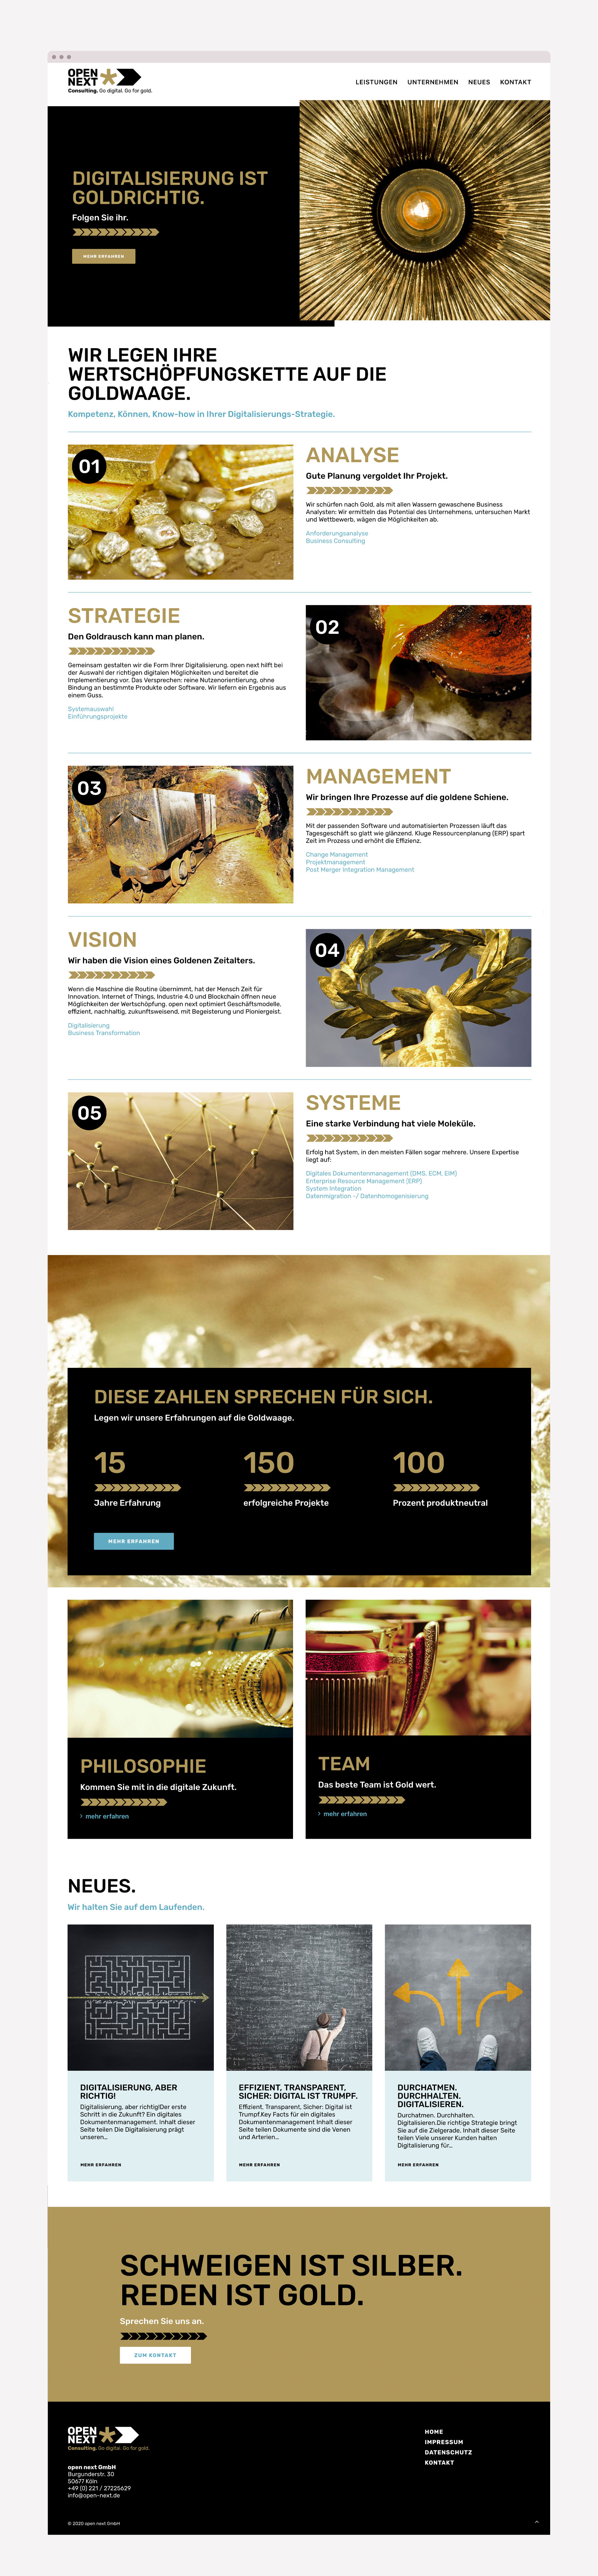 Webdesign für open next